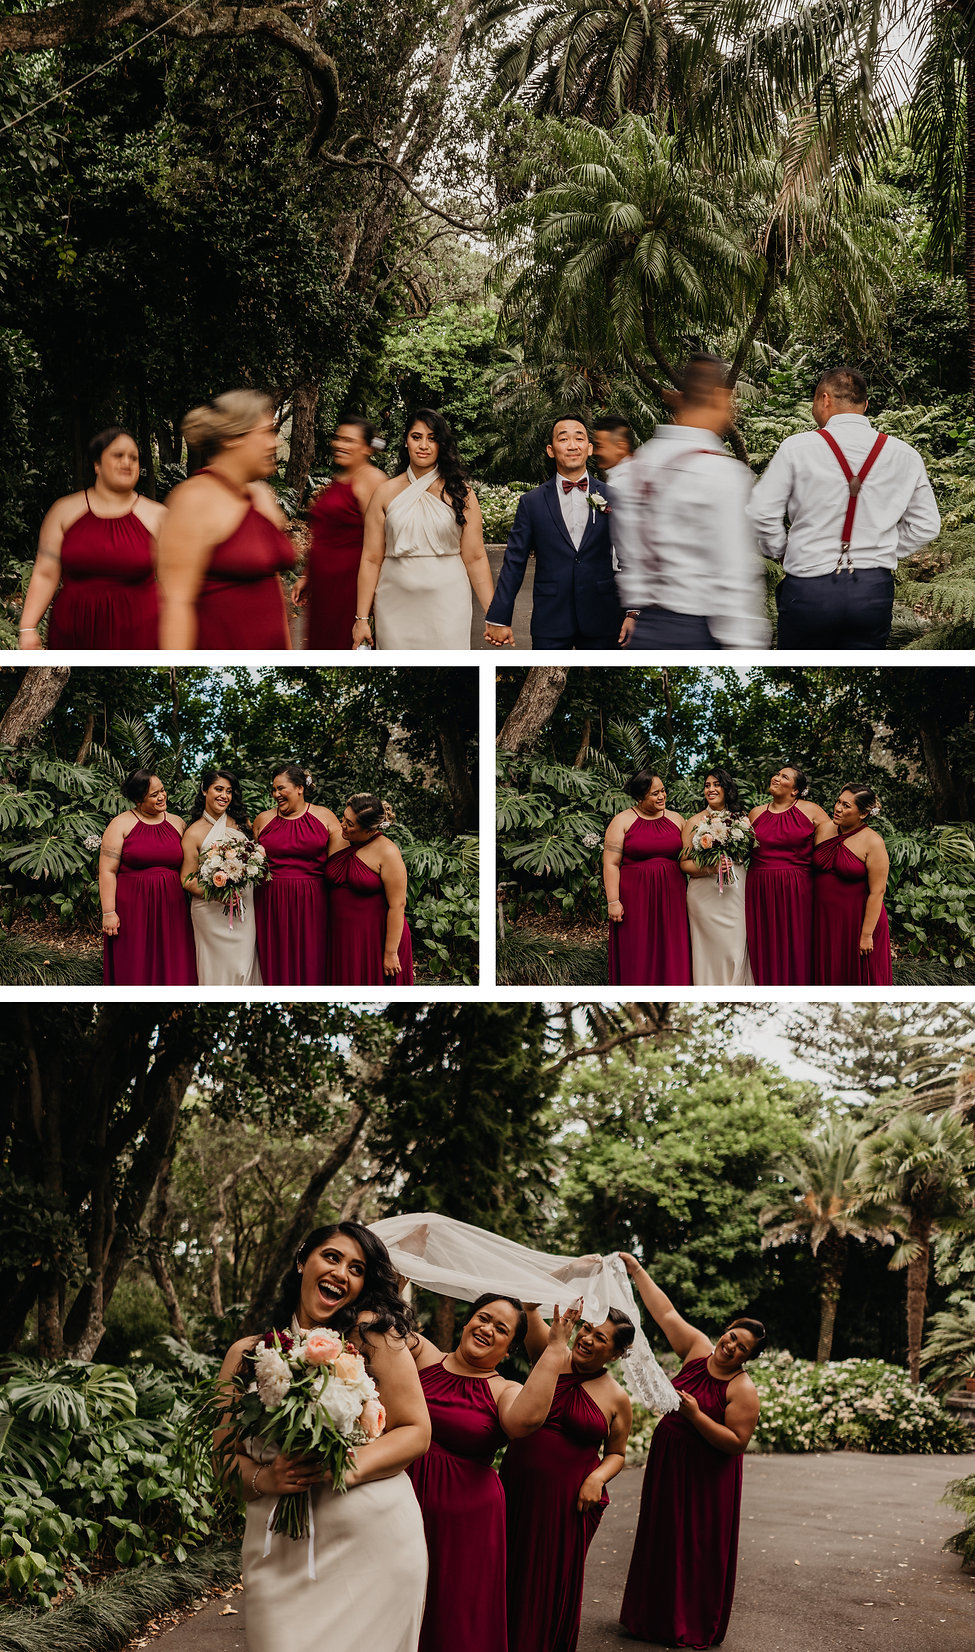 Wedding part photos at Auckland, New Zealand Kelliher Estate, captured by Wanderlusting Lovers